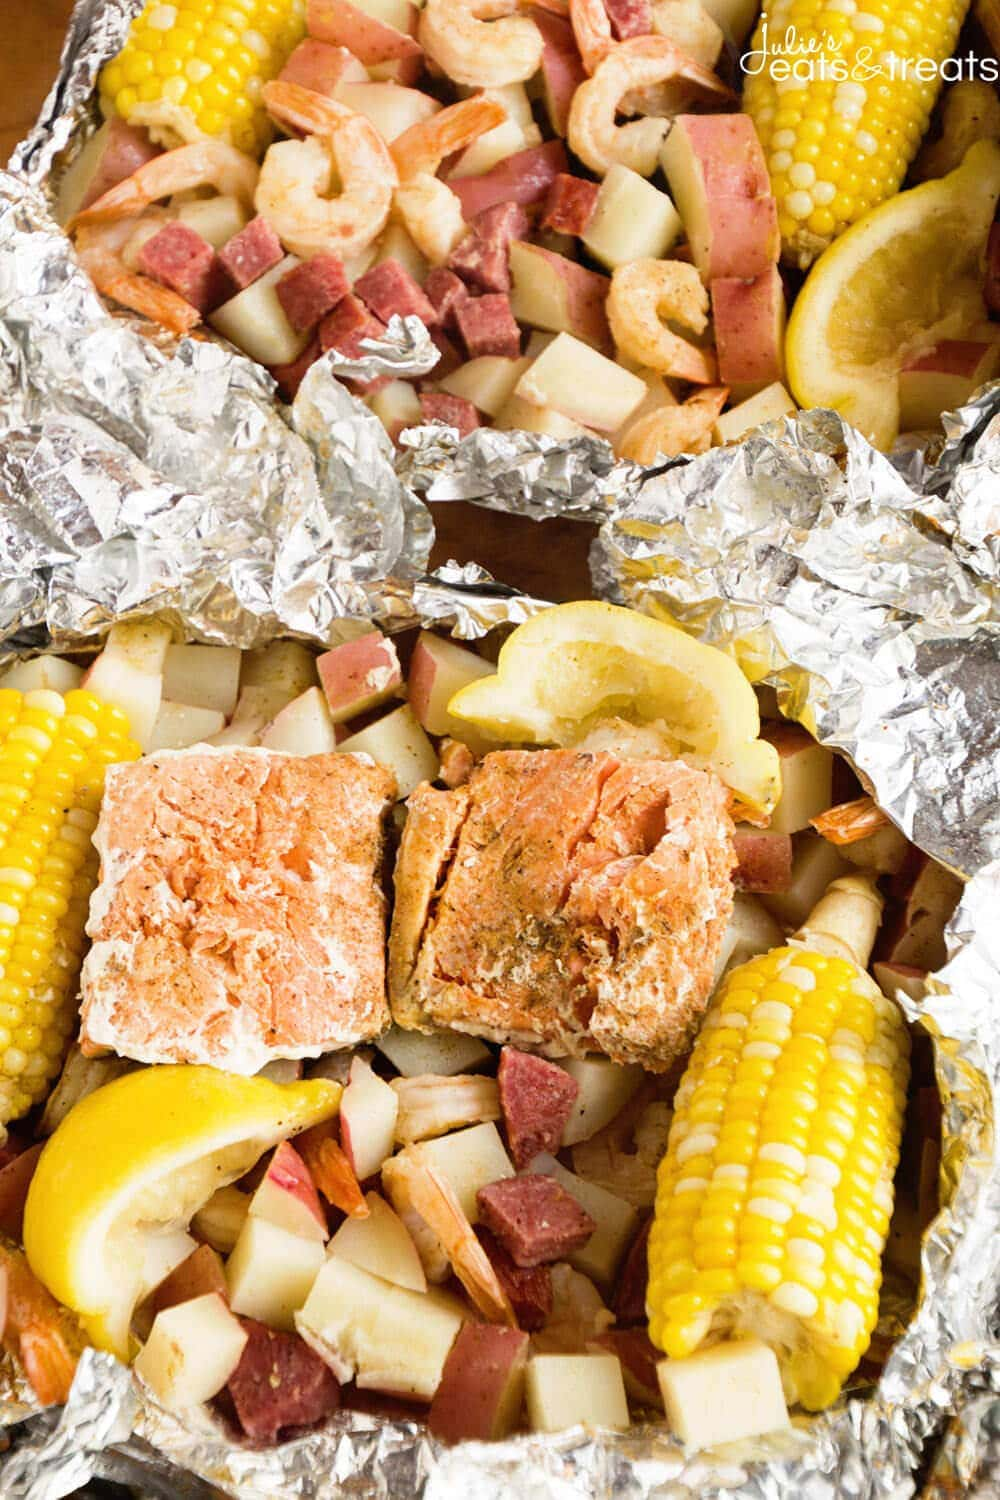 Cajun Shrimp Boil Foil Packets ~ Foil Packets Stuffed with Potatoes, Salmon, Shrimp, Summer Sausage, Corn and Seasoned with Cajun Seasoning! The Perfect Grilling Recipe!